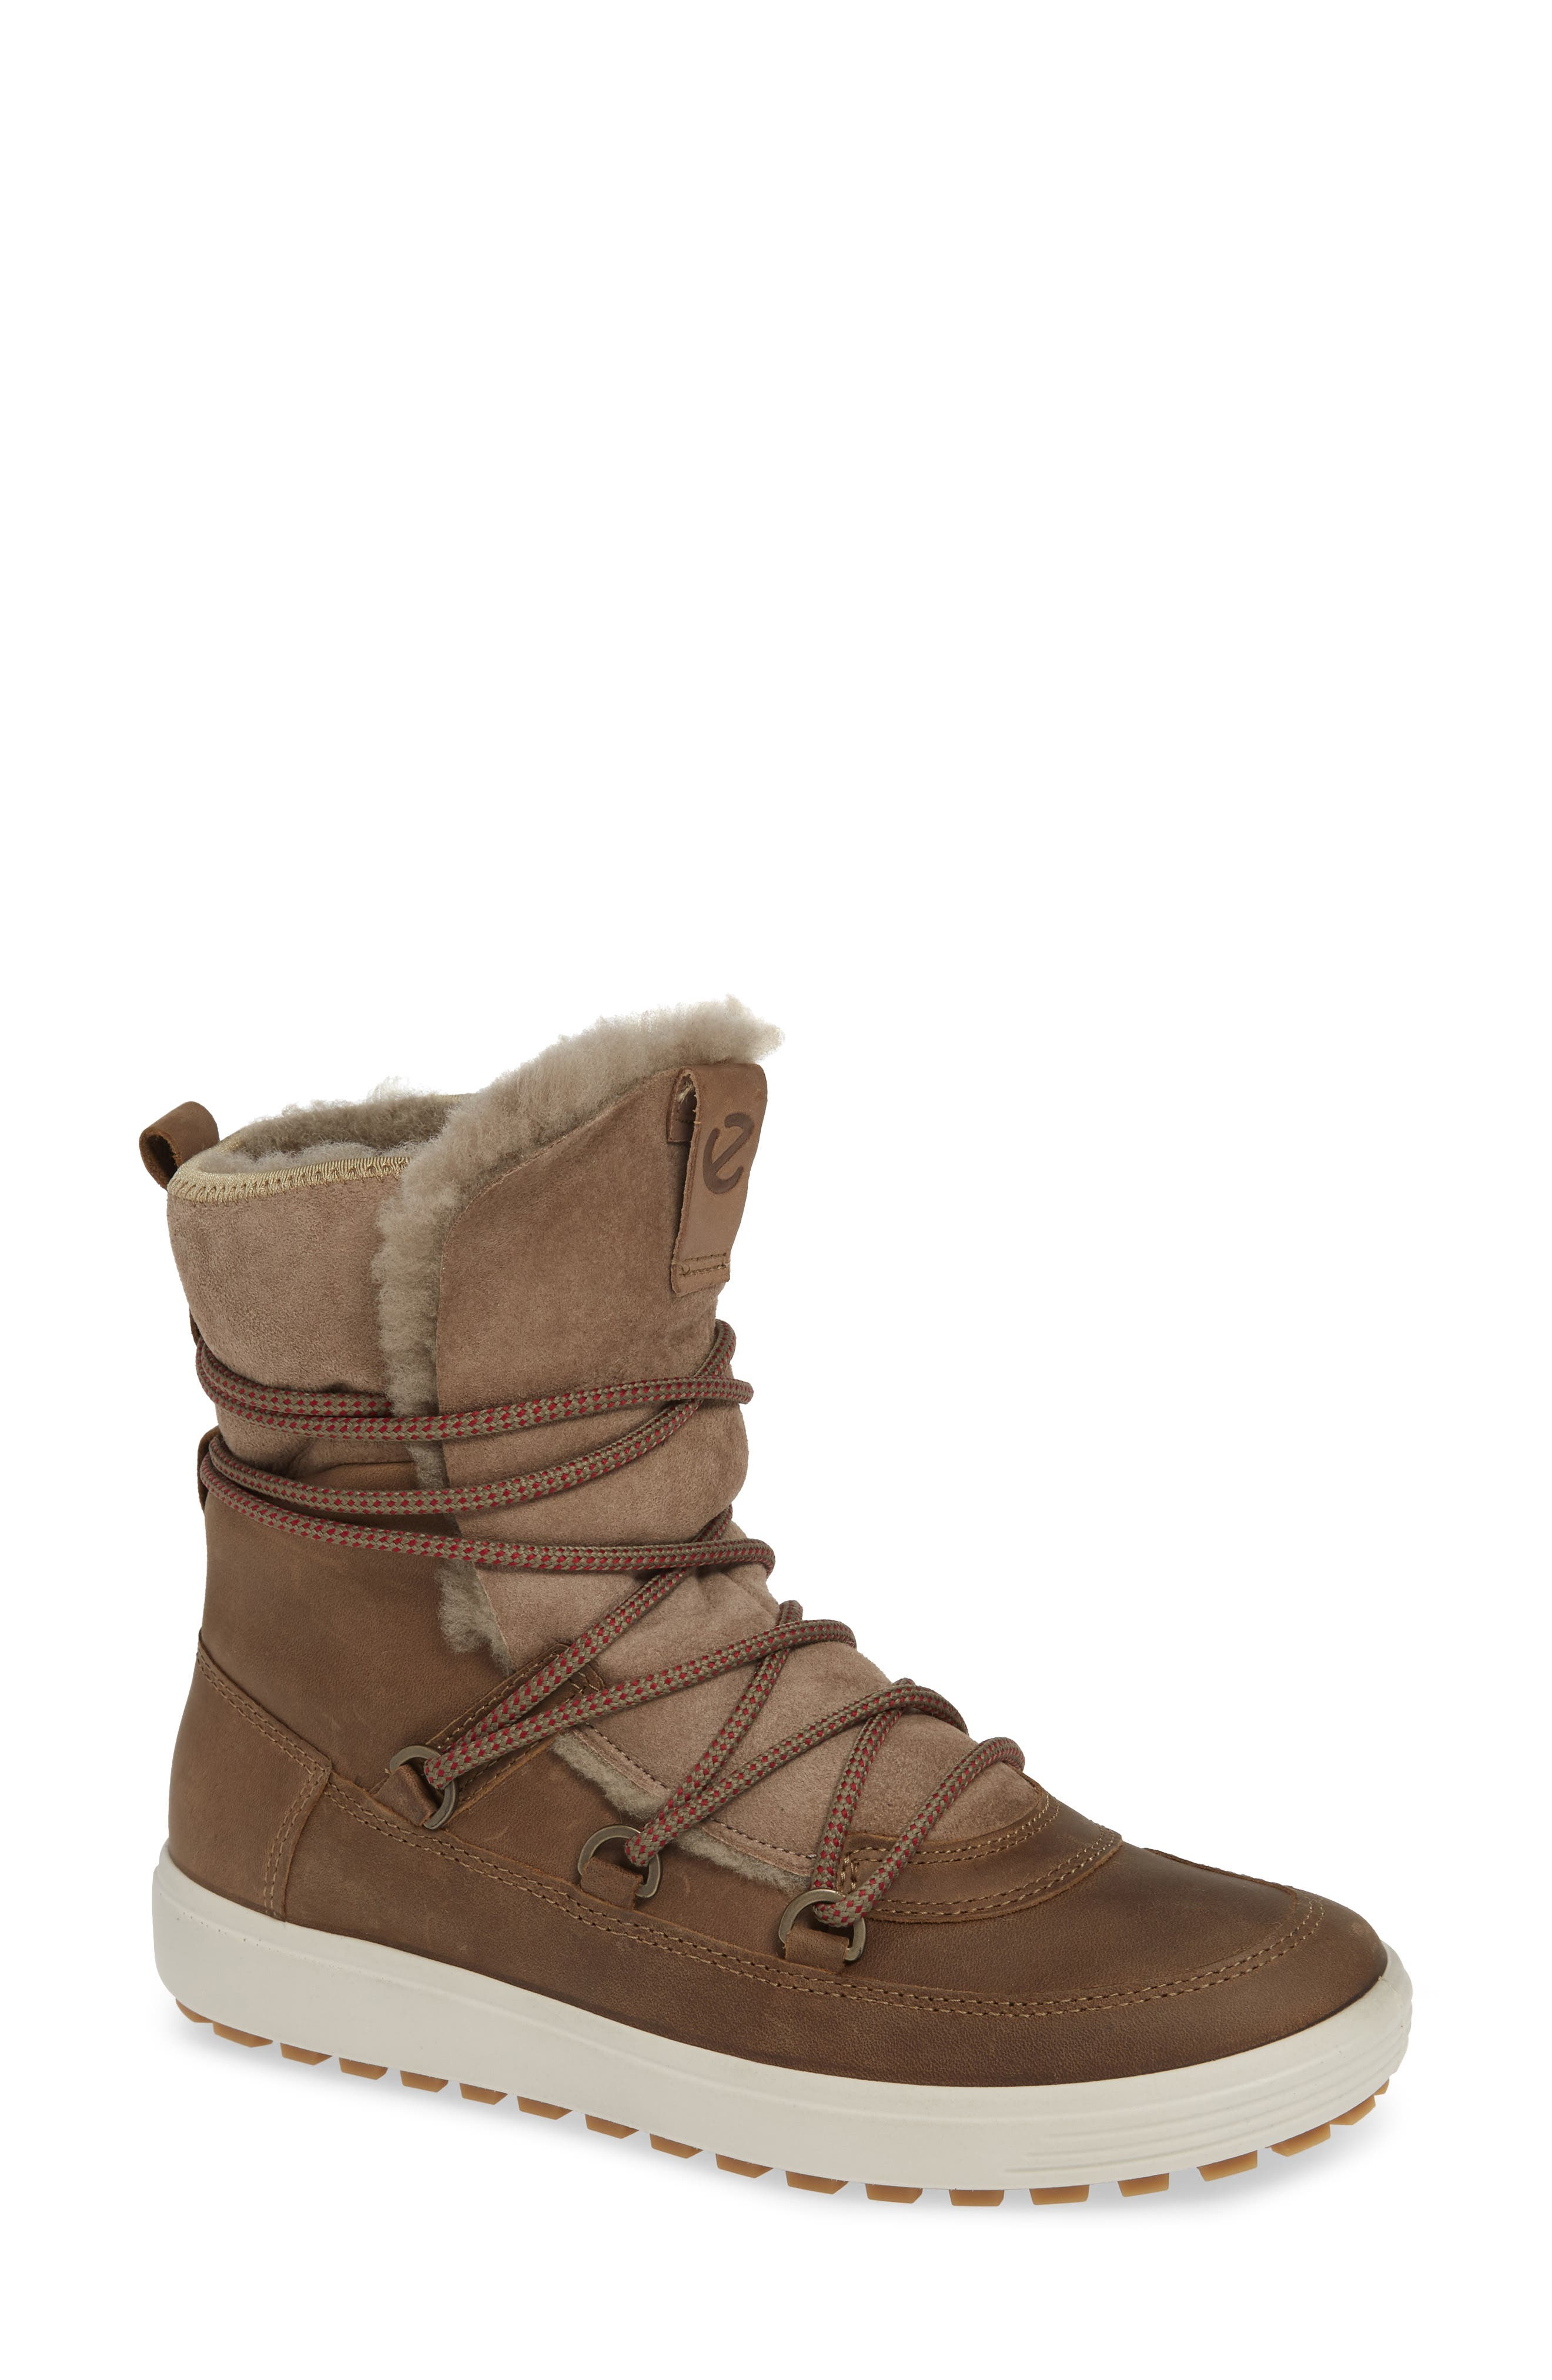 Soft 7 Tred Waterproof Genuine Shearling Lined Bootie, Main, color, 247